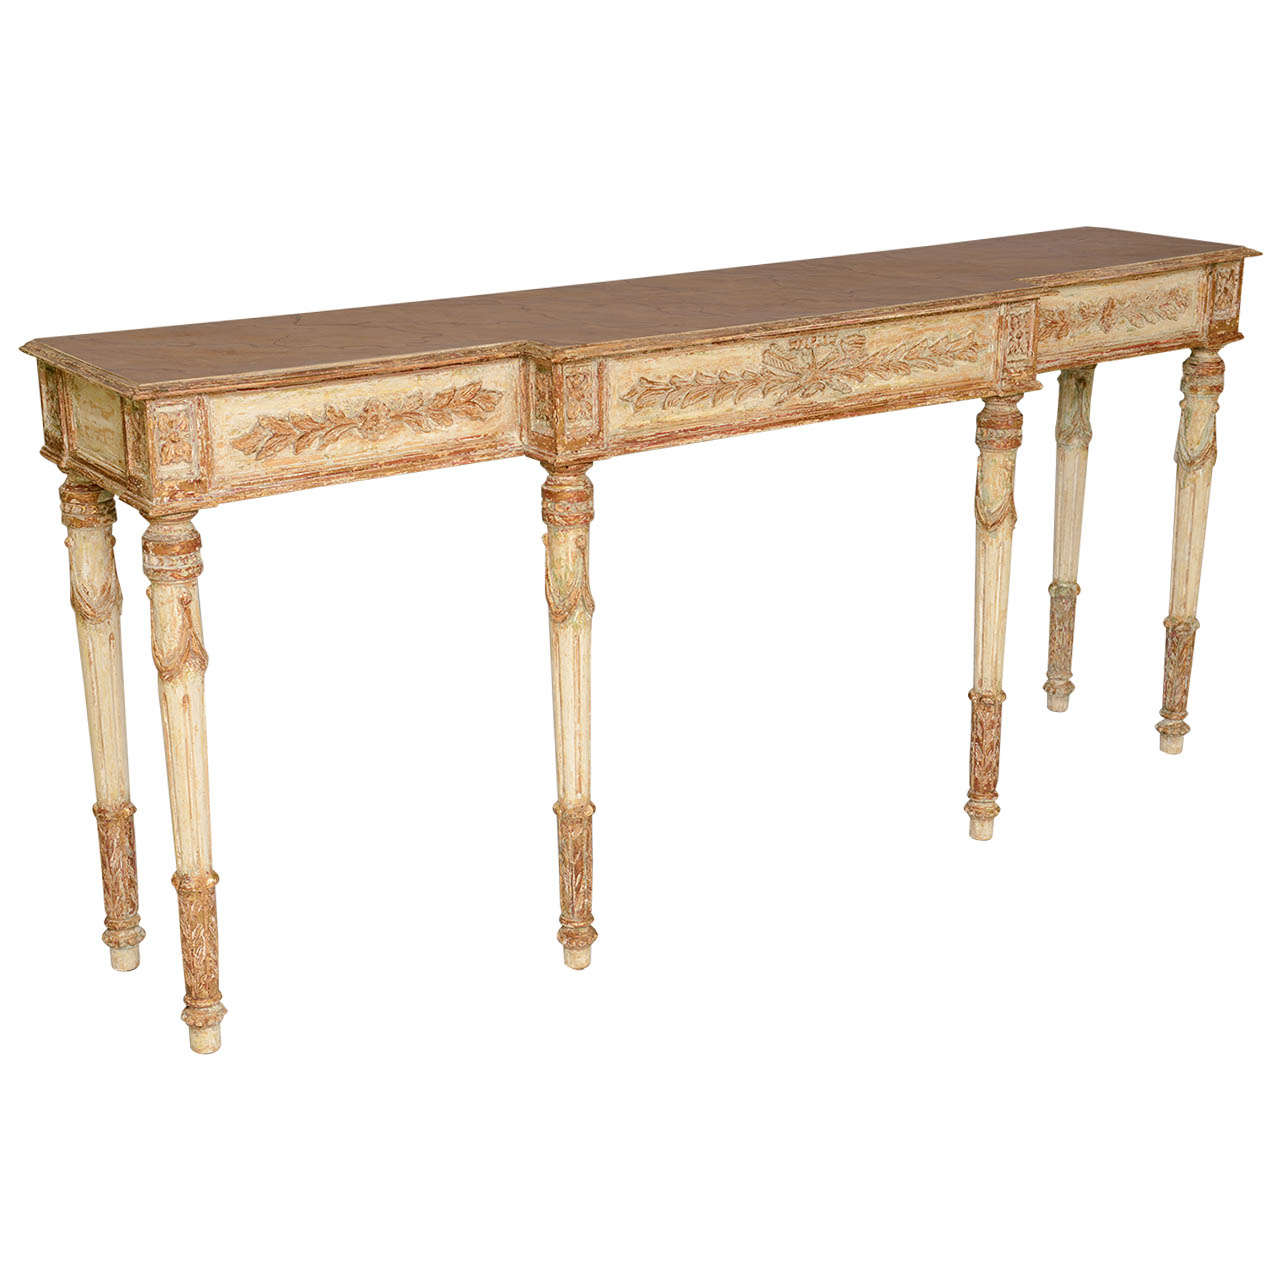 long slim console table home design ideas narrow made wooden natural finished having carved accent tables kitchen knobs and pulls white outdoor setting cool lamps wine cabinet